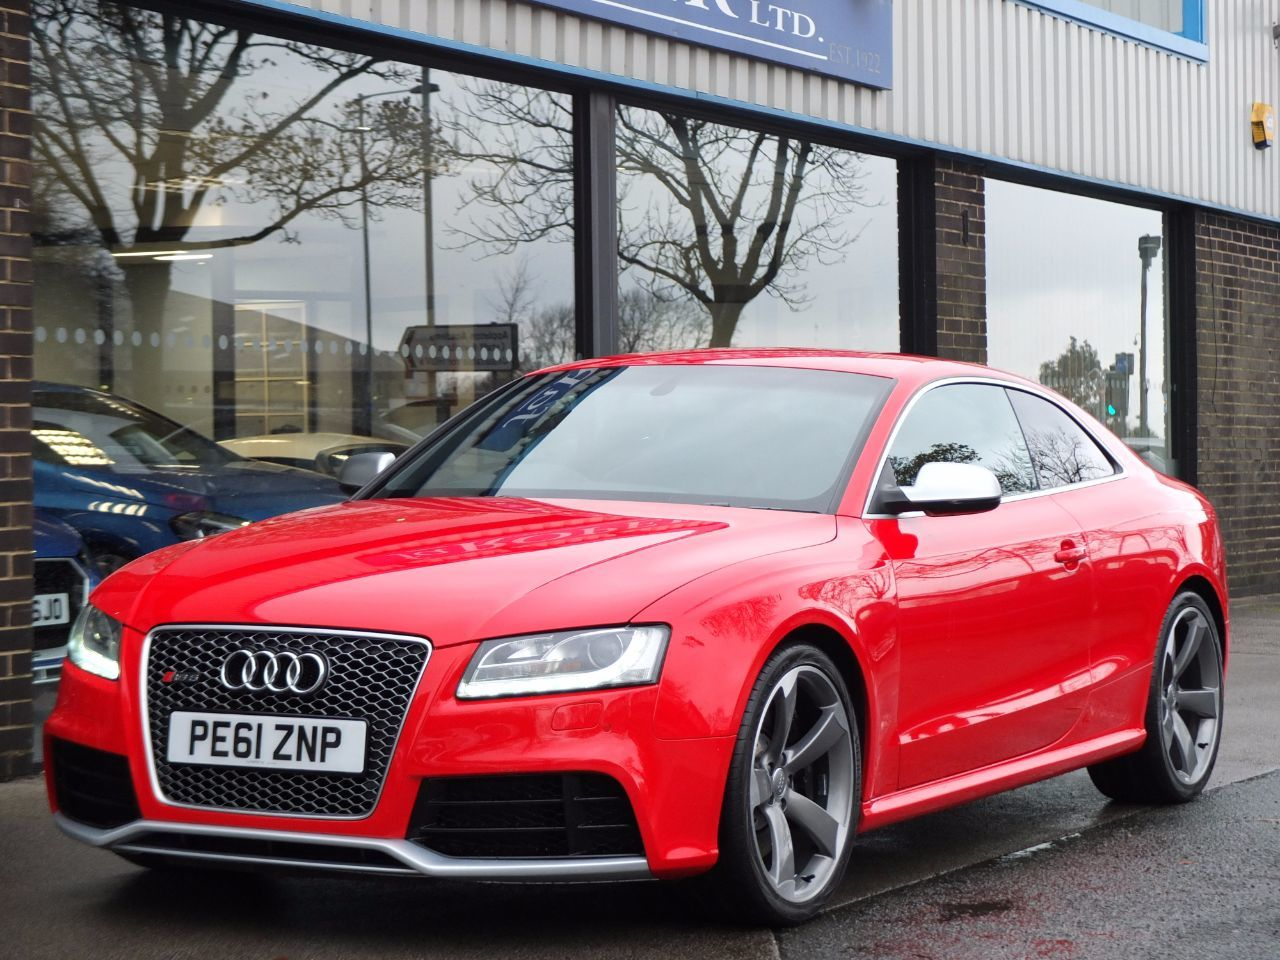 Audi RS5 4.2 FSI quattro (Bucket Seats, Miltek Exhaust, Tech Pack) Coupe Petrol Misano Red PearlAudi RS5 4.2 FSI quattro (Bucket Seats, Miltek Exhaust, Tech Pack) Coupe Petrol Misano Red Pearl at fa Roper Ltd Bradford